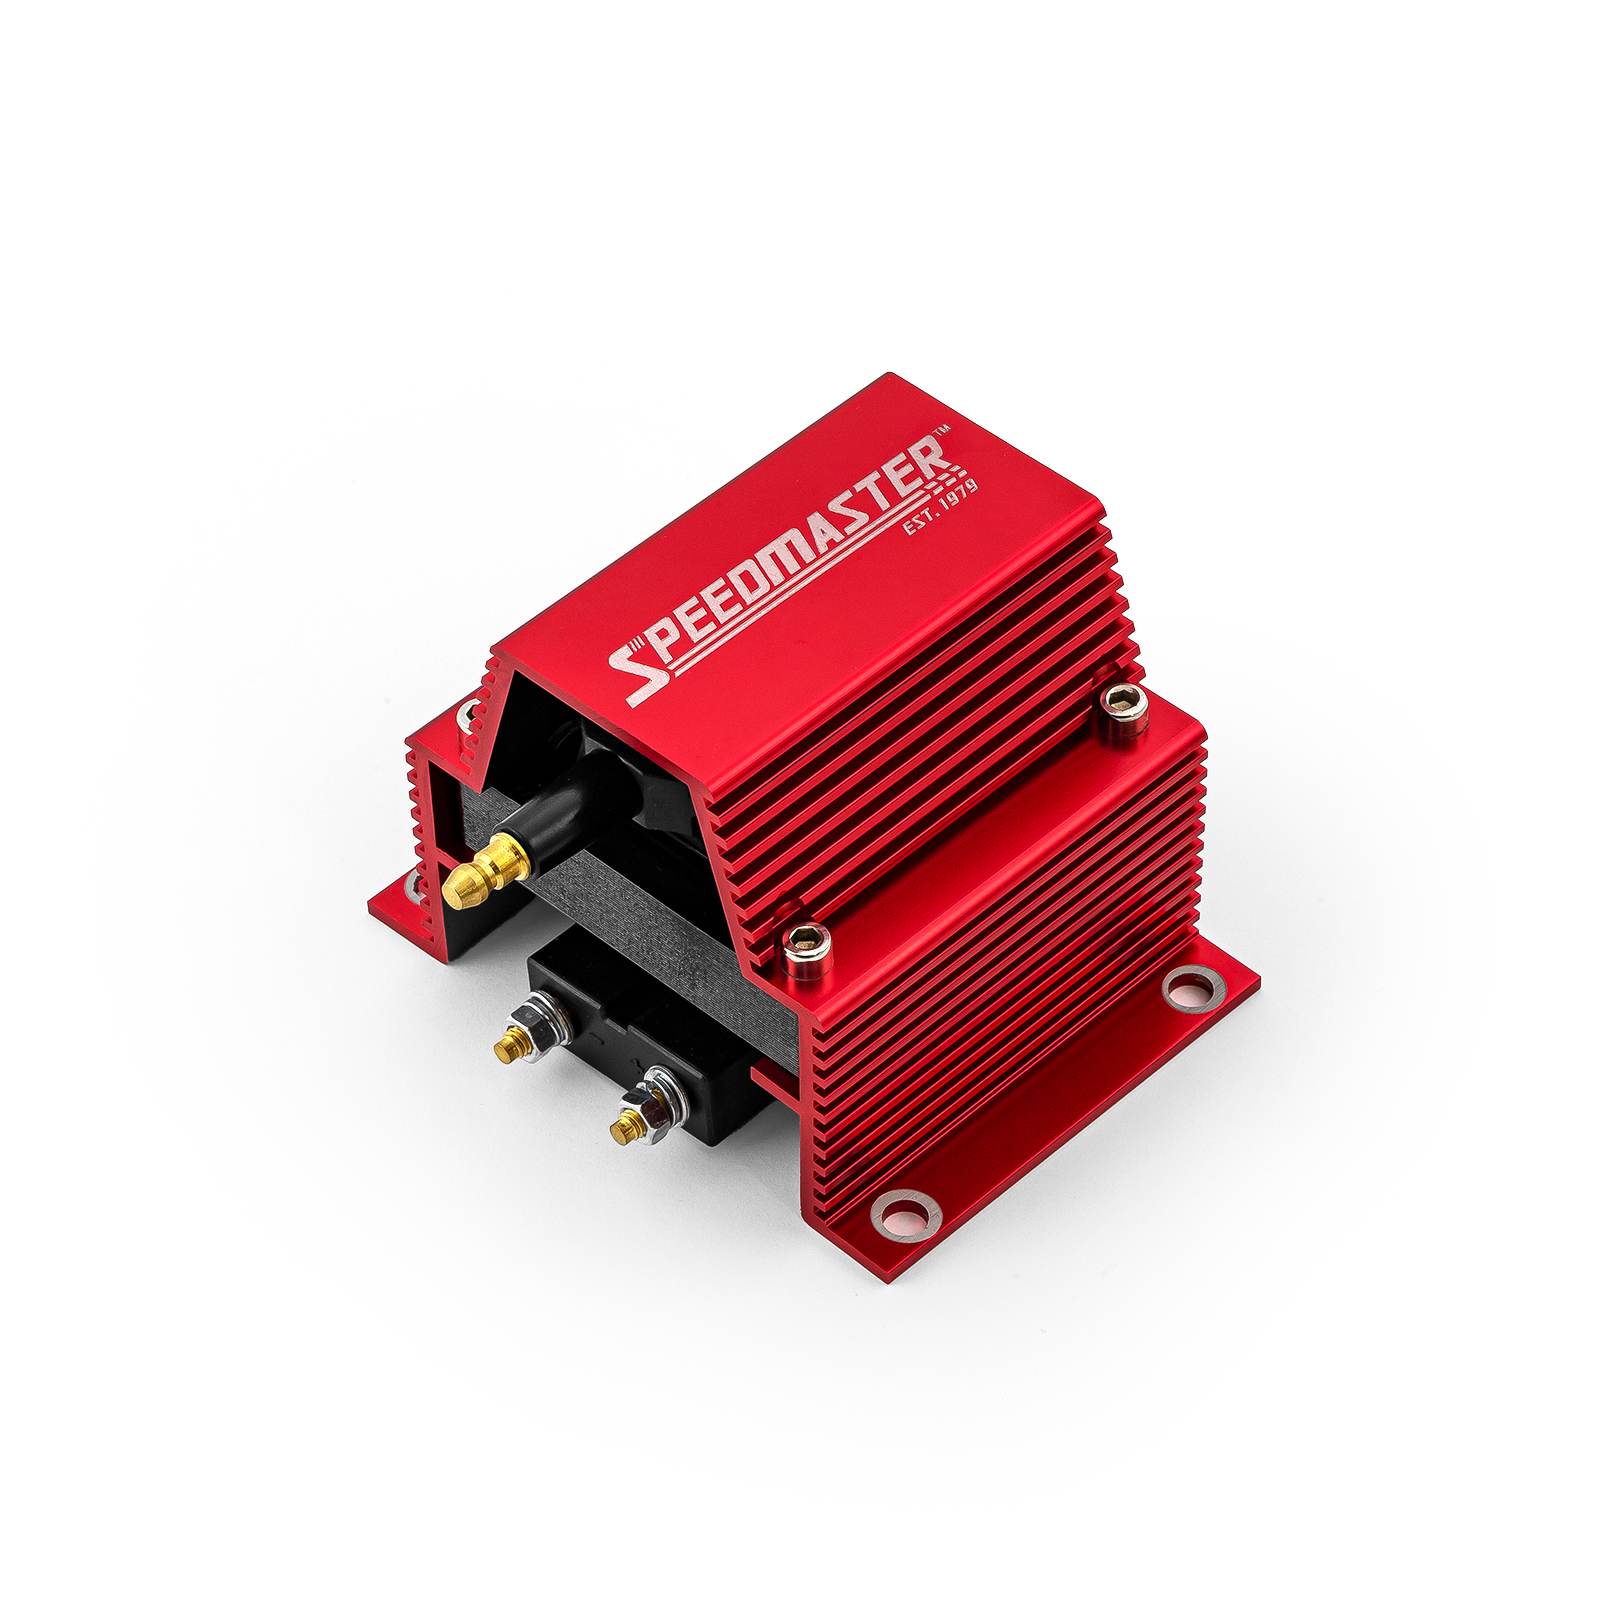 12V HO External Male E-Core Ignition Coil - Red